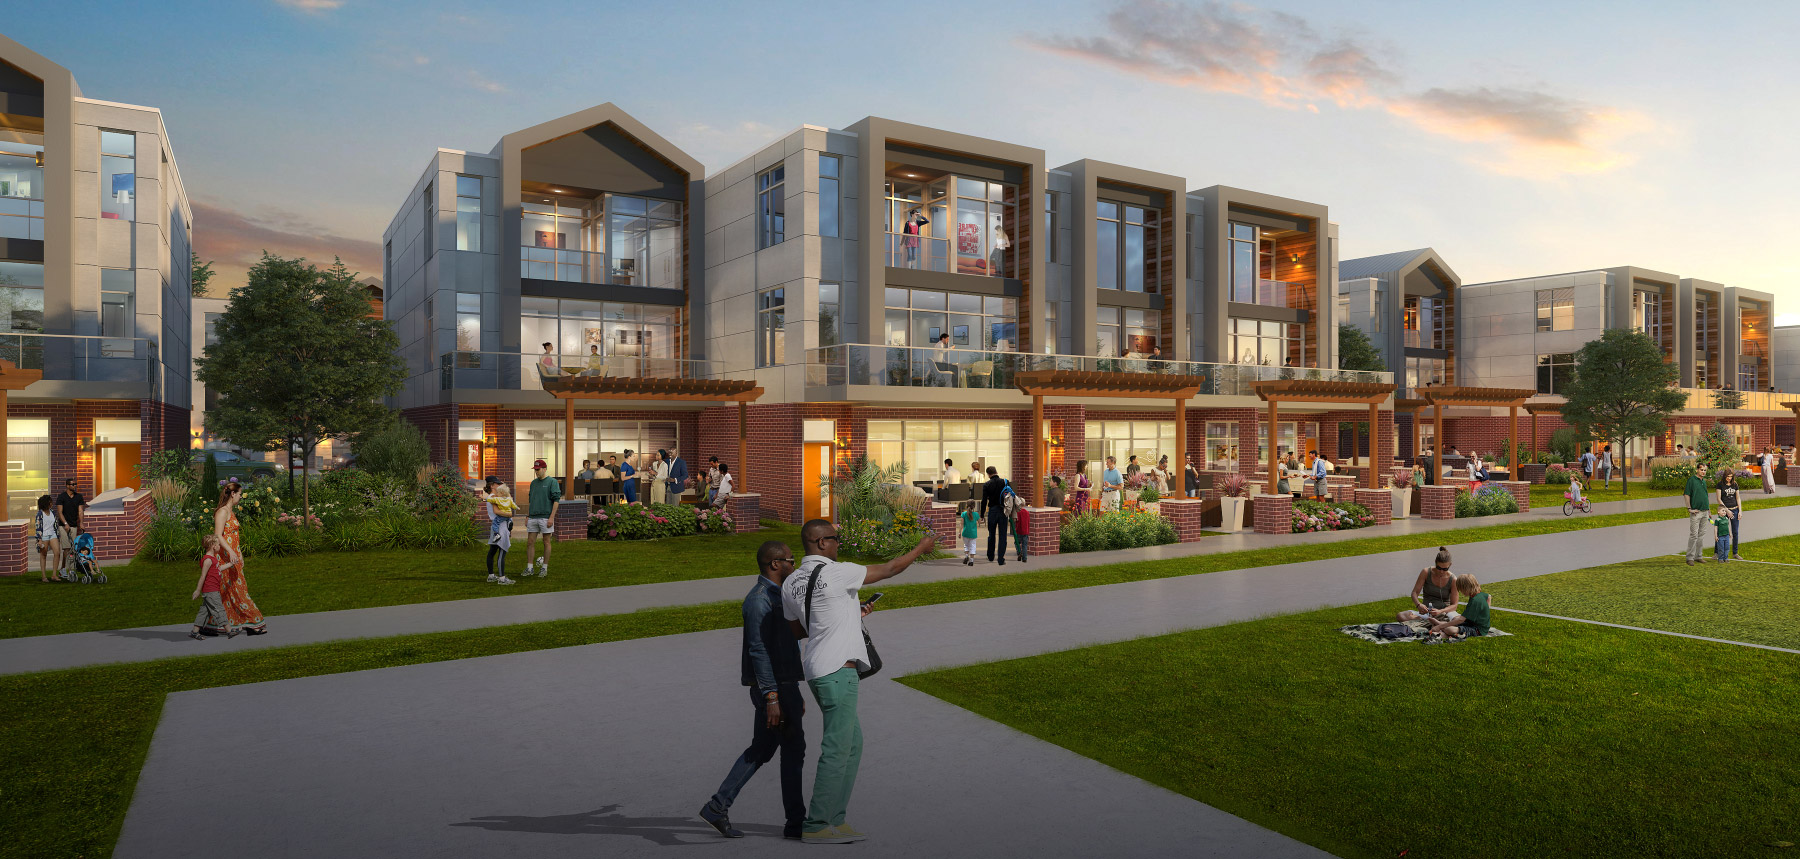 Rendering of the residences at Titletown